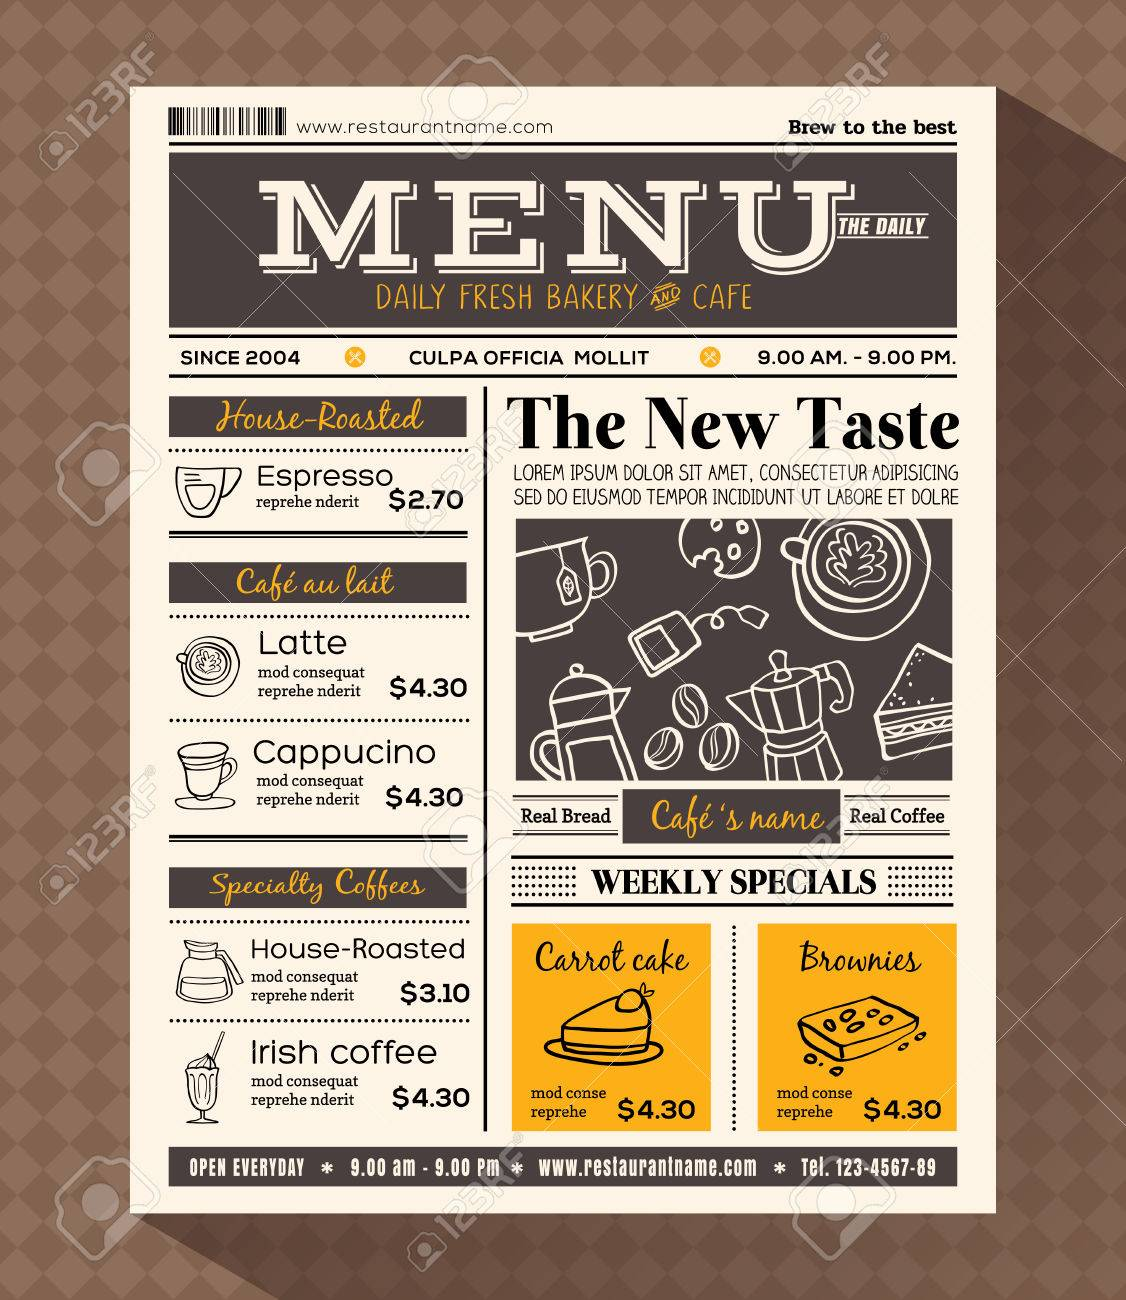 Restaurant Cafe Menu Design Template In Newspaper Style Royalty Free Cliparts Vectors And Stock Illustration Image 61510362